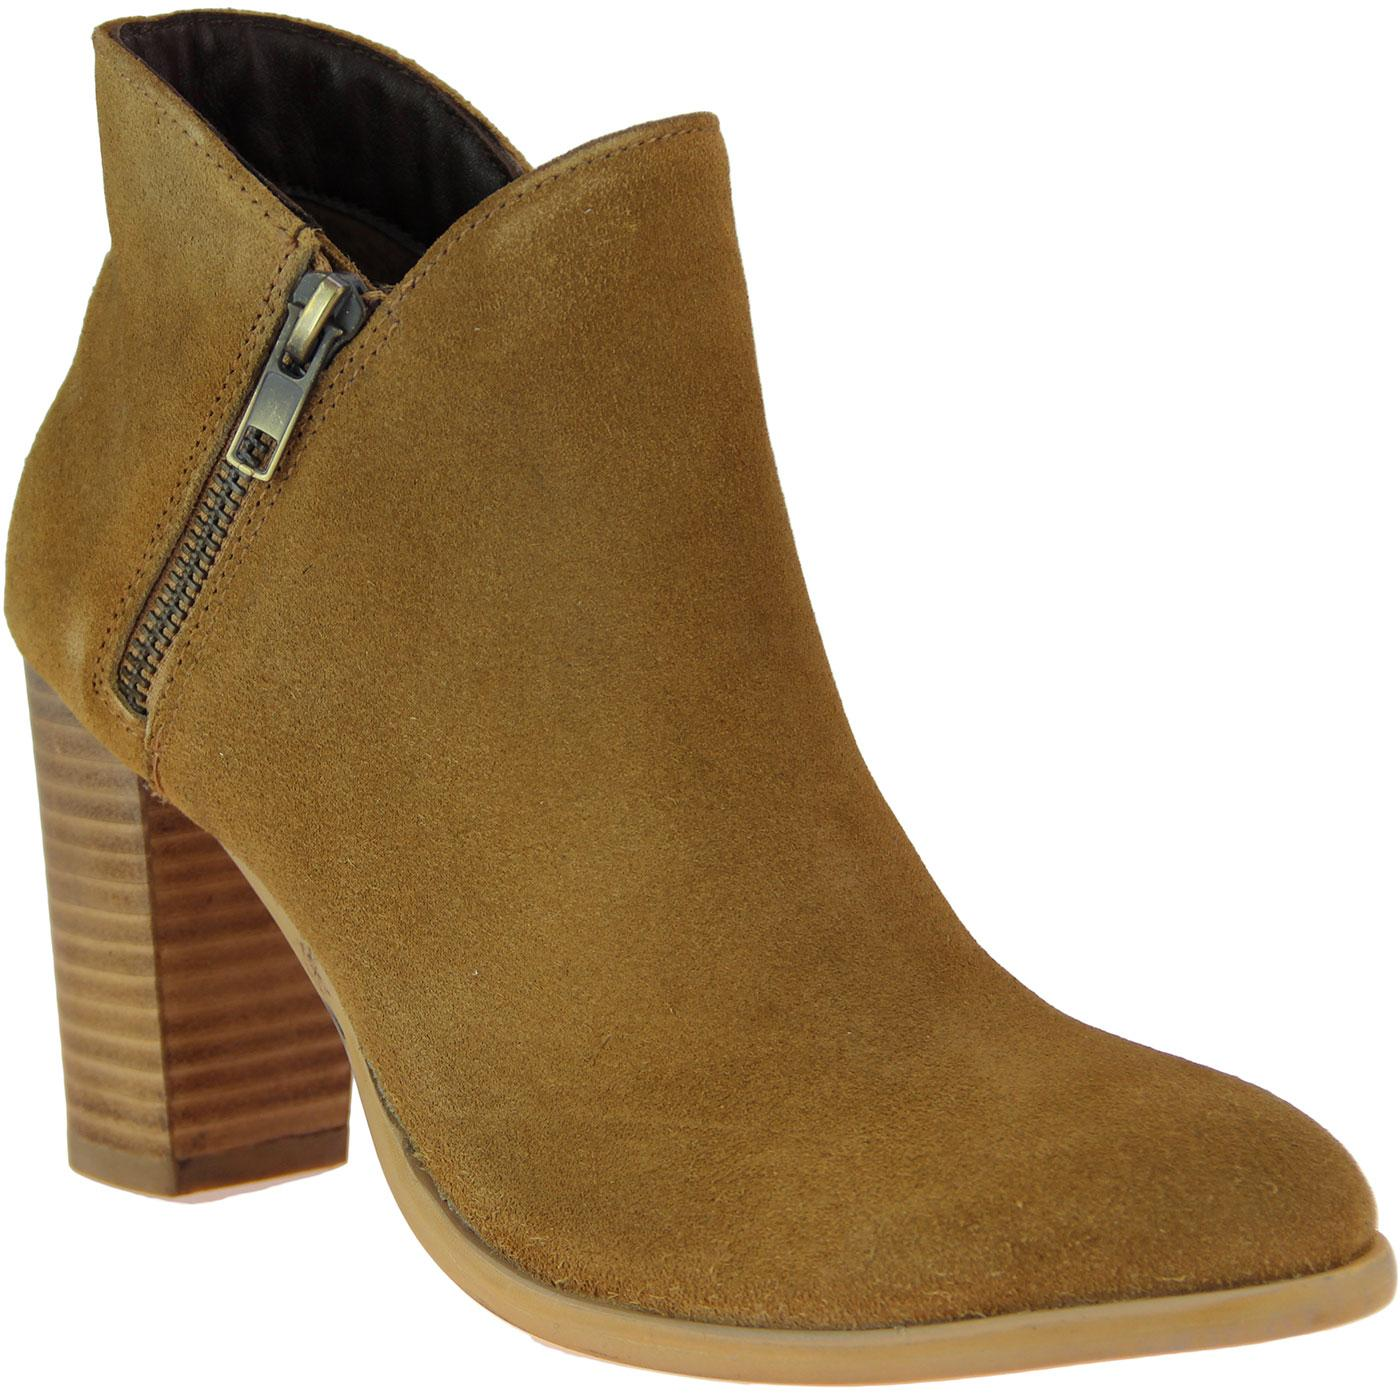 Cobie LACEYS Zip Retro Side Suede Heel Boots TAN